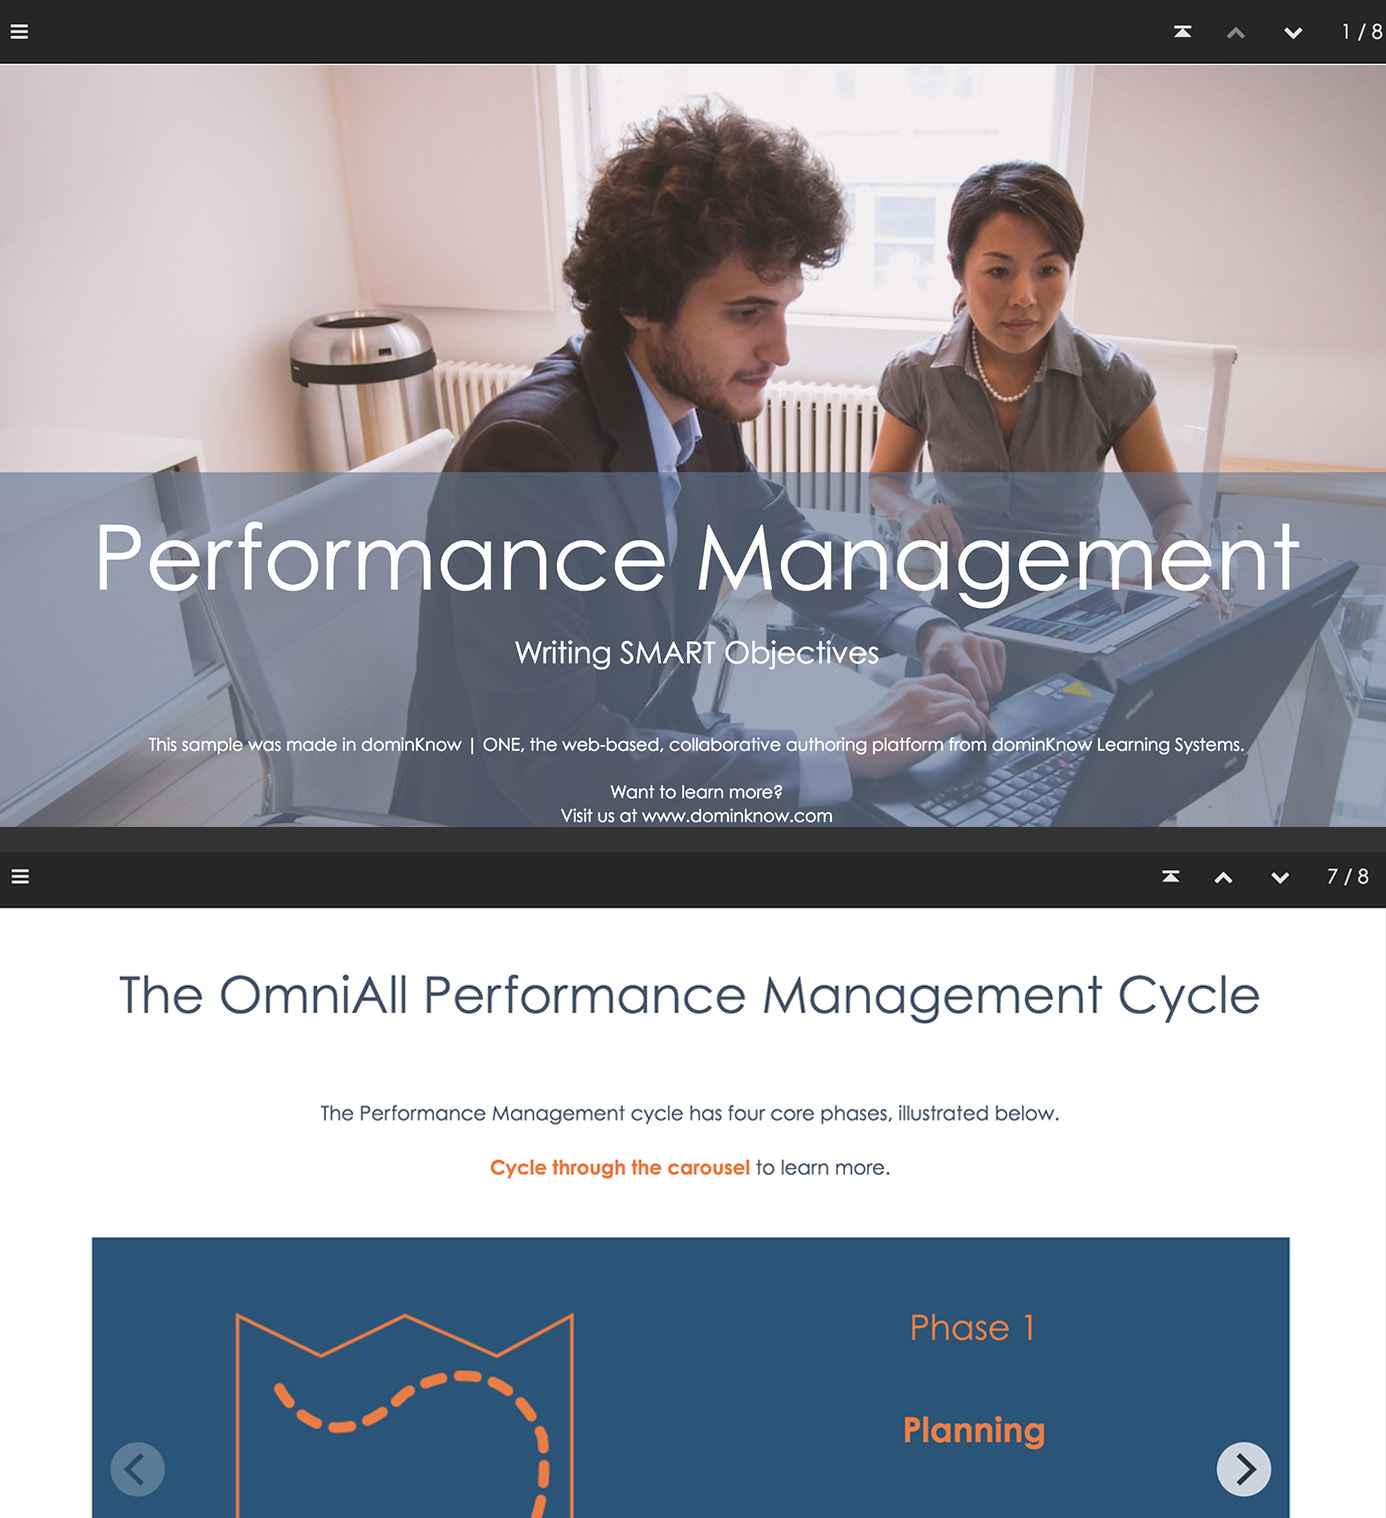 Performance Management – Writing SMART Objectives screenshots